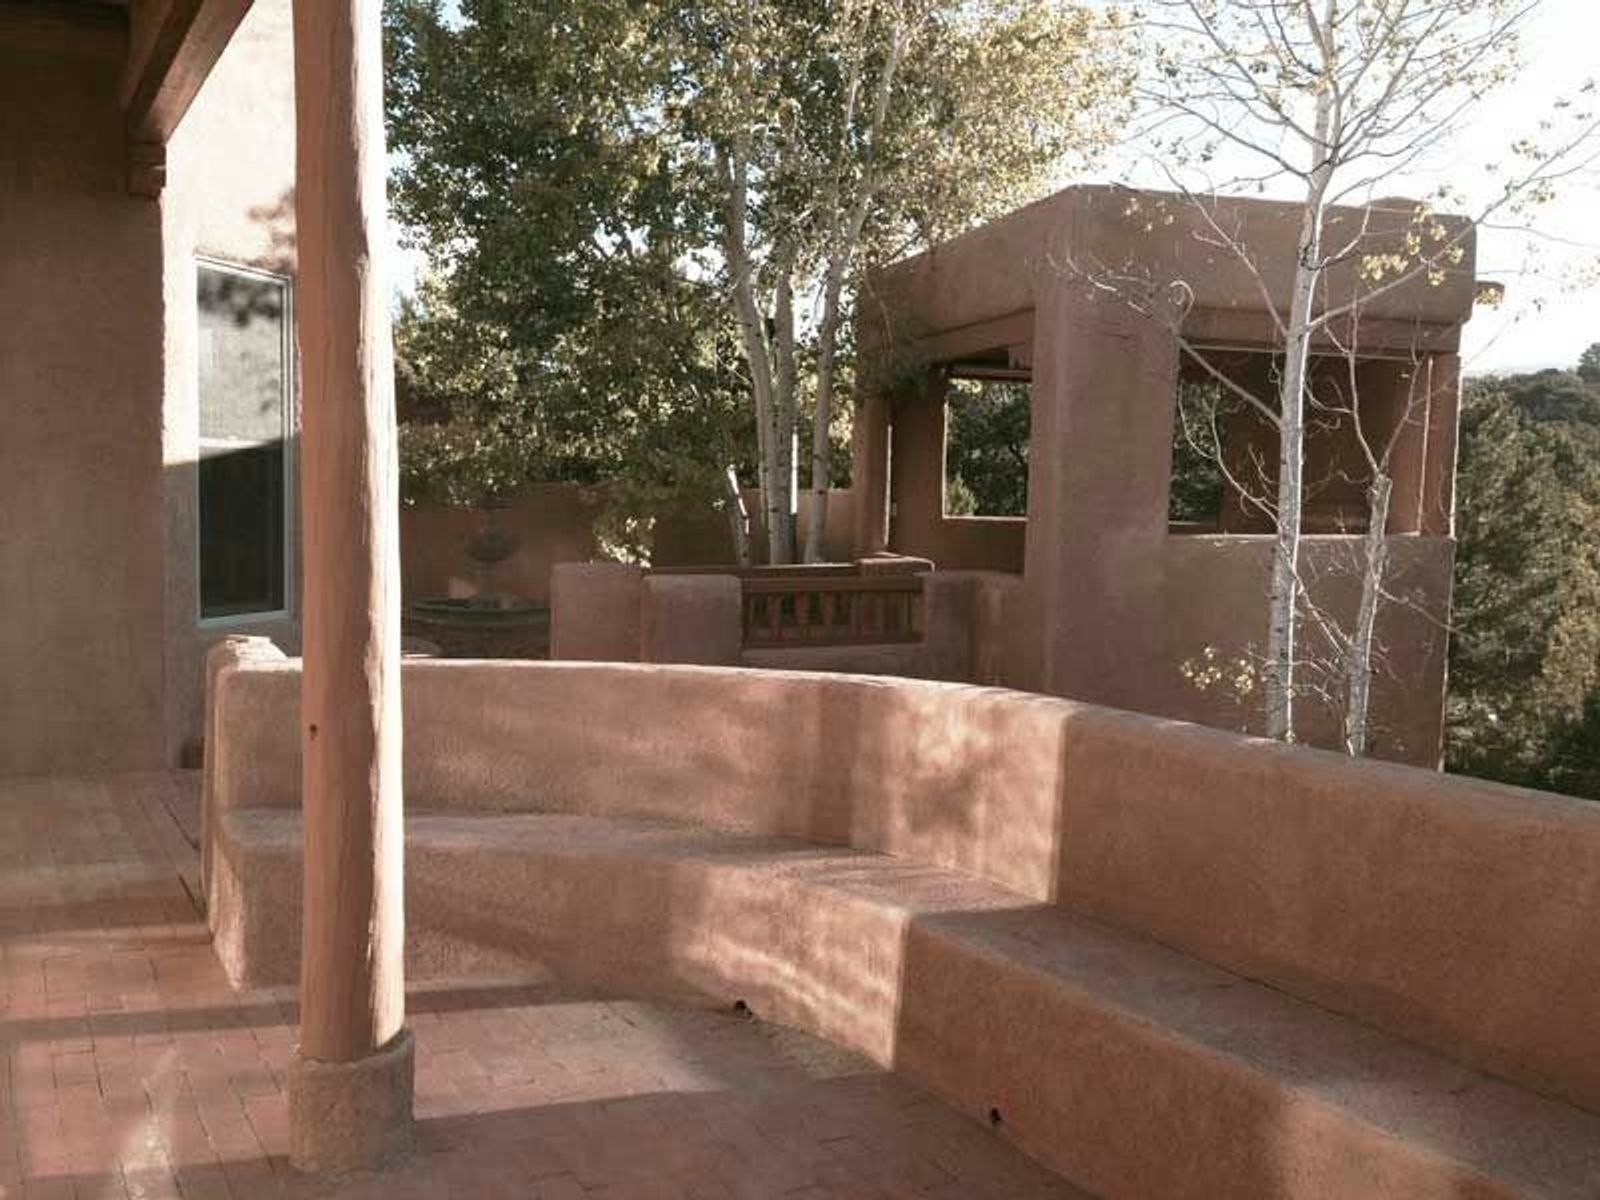 921 Calle Vistoso, Santa Fe NM Single Family Home - Santa Fe Real Estate